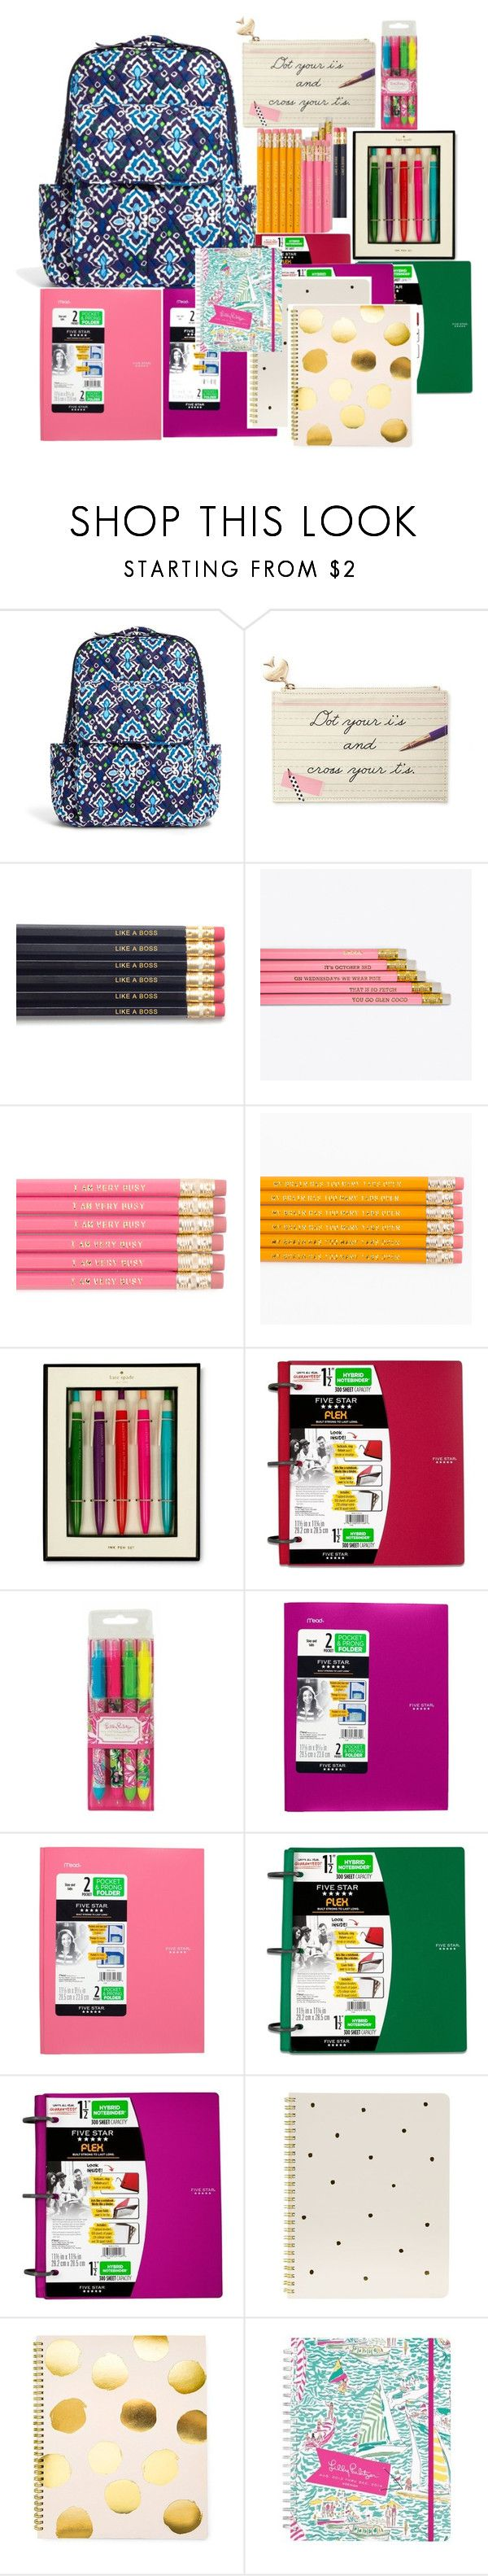 """""""School Supplies 2017"""" by nailsforashleywest on Polyvore featuring Vera Bradley, Kate Spade, Lilly Pulitzer, Sugar Paper, women's clothing, women's fashion, women, female, woman and misses"""